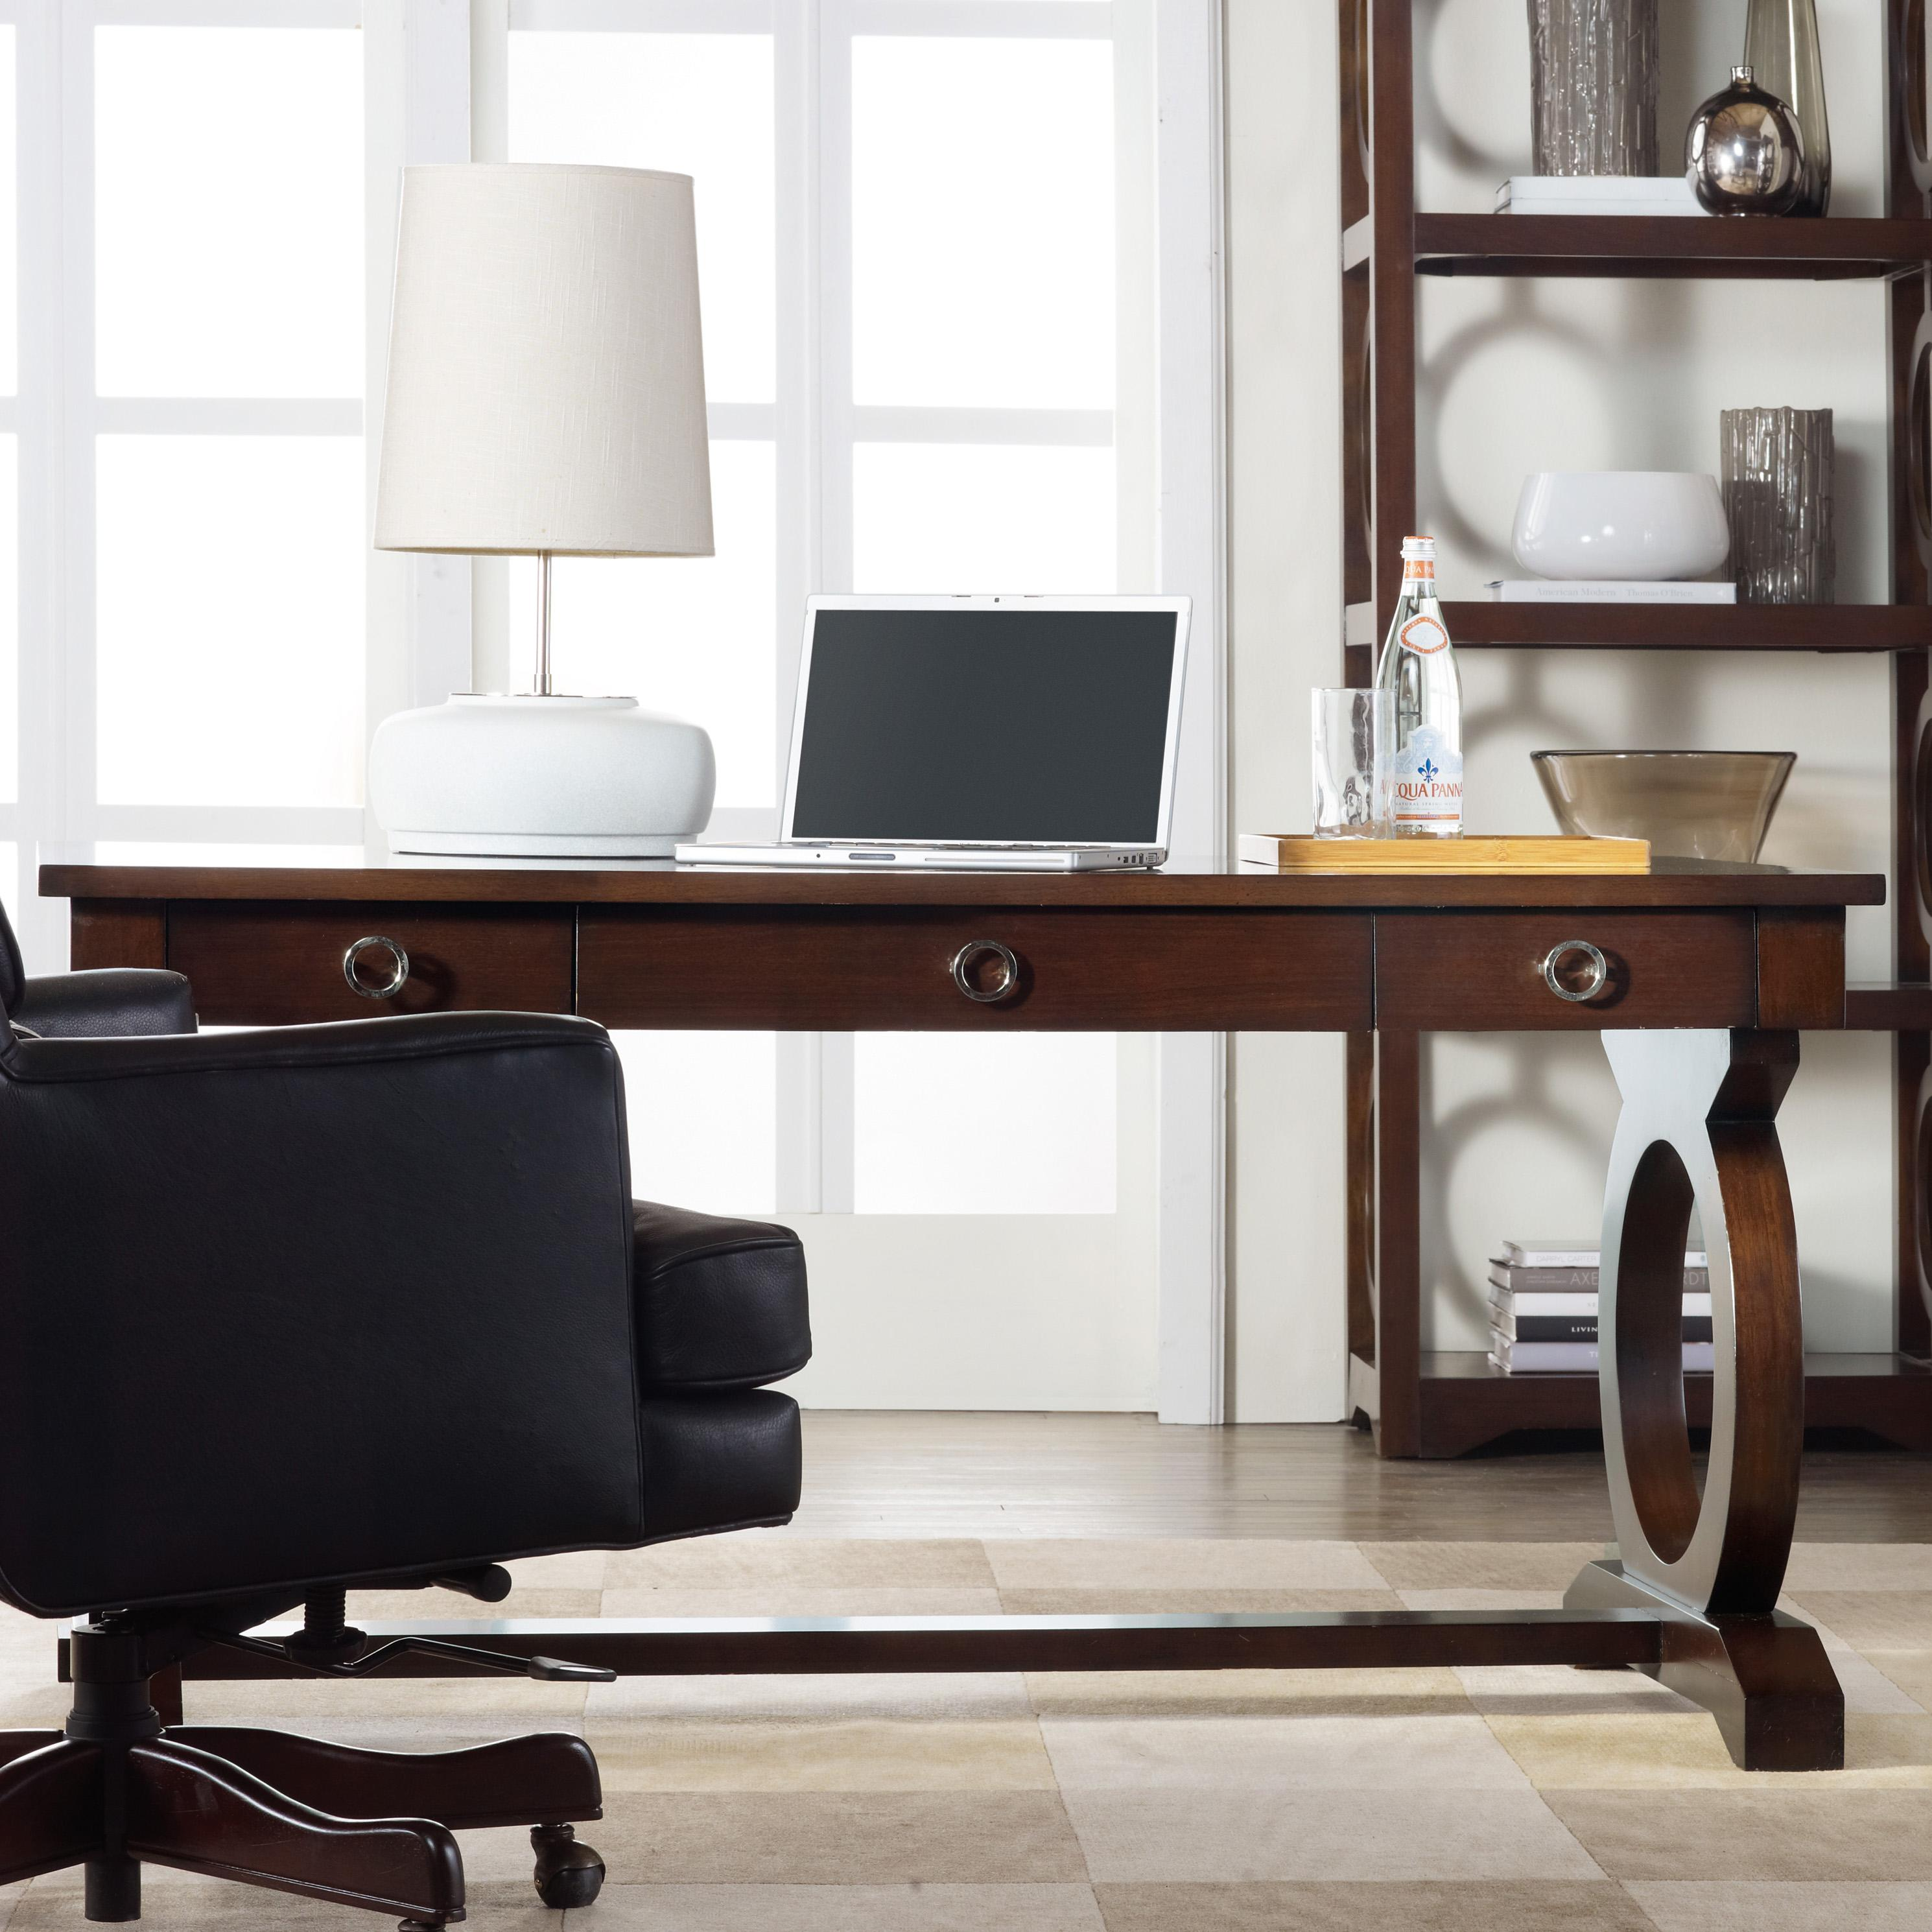 Office Furniture Hamilton Kinsey Contemporary Writing Desk With Drop Front Keyboard Drawer And Open Circle Fretwork By Hamilton Home At Rotmans